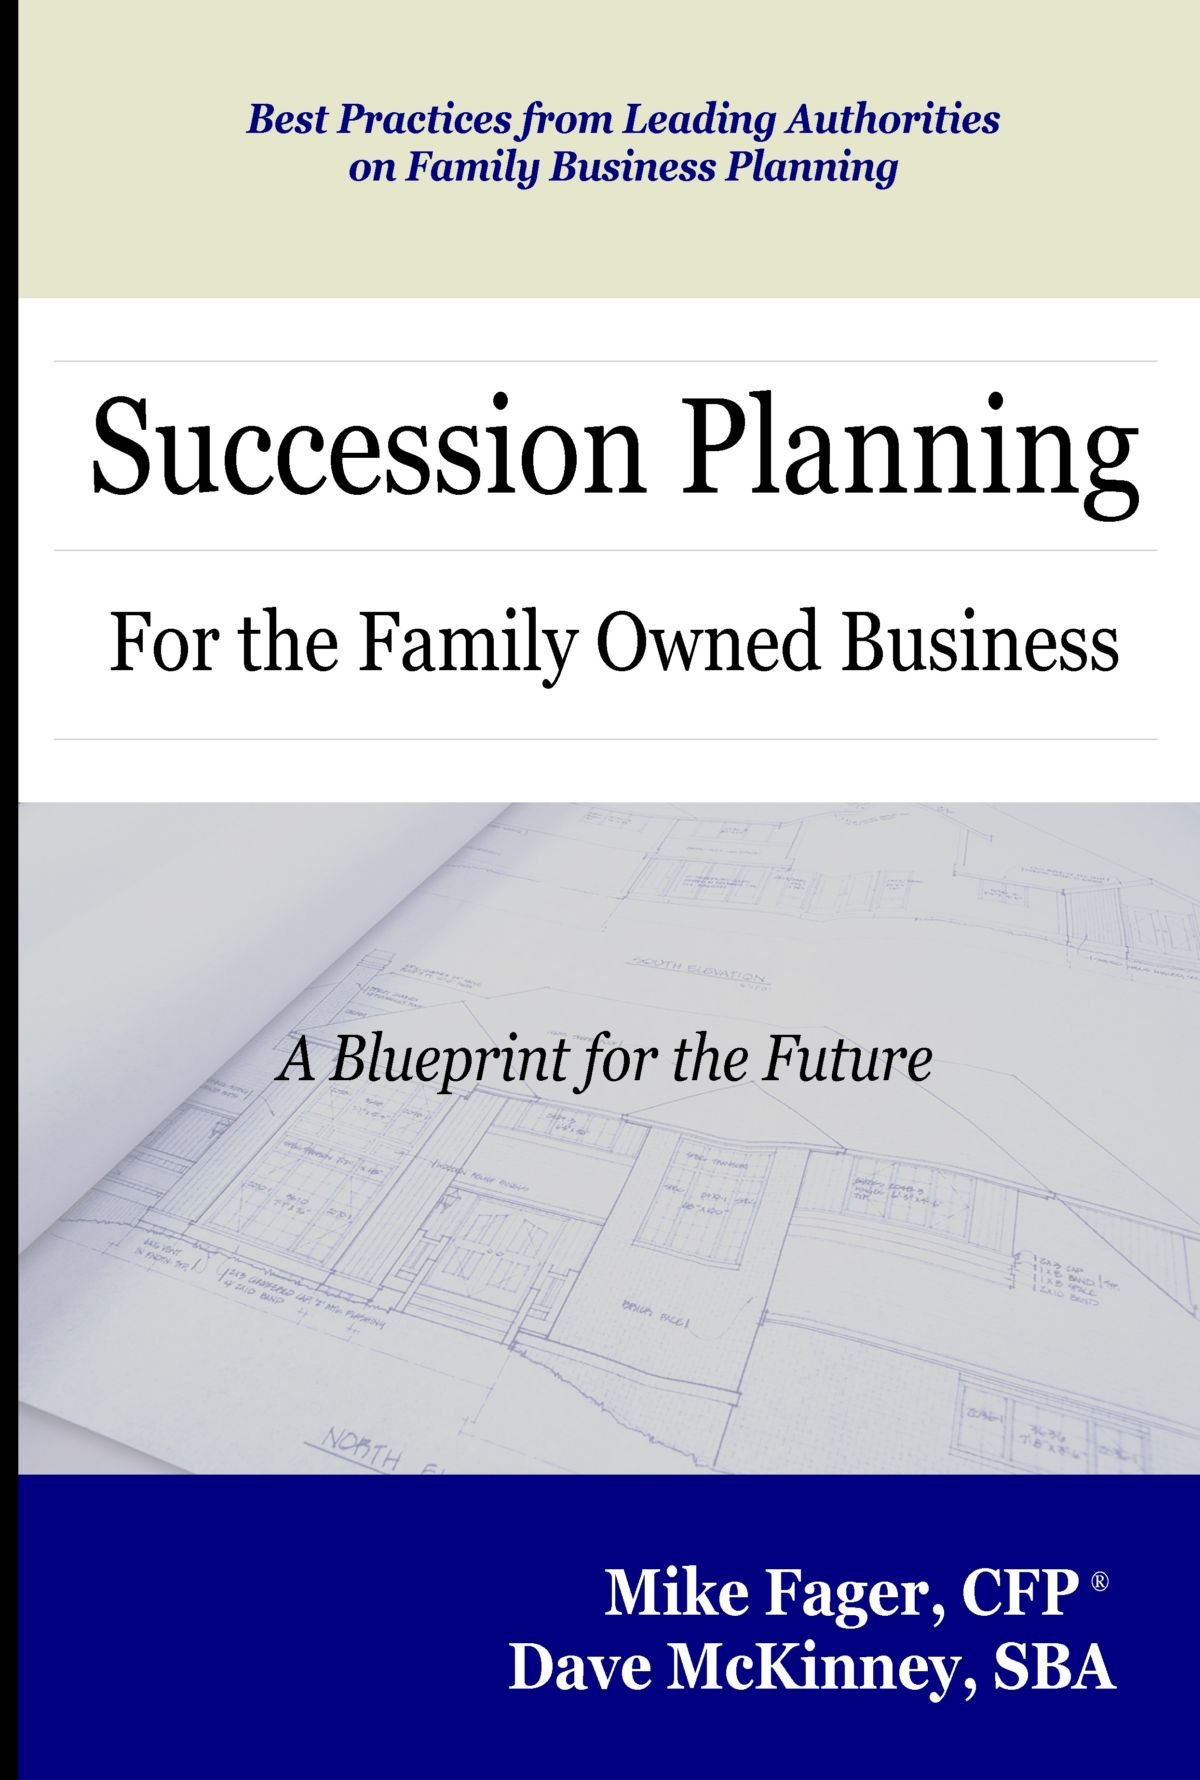 Succession Planning for the Family Owned Business